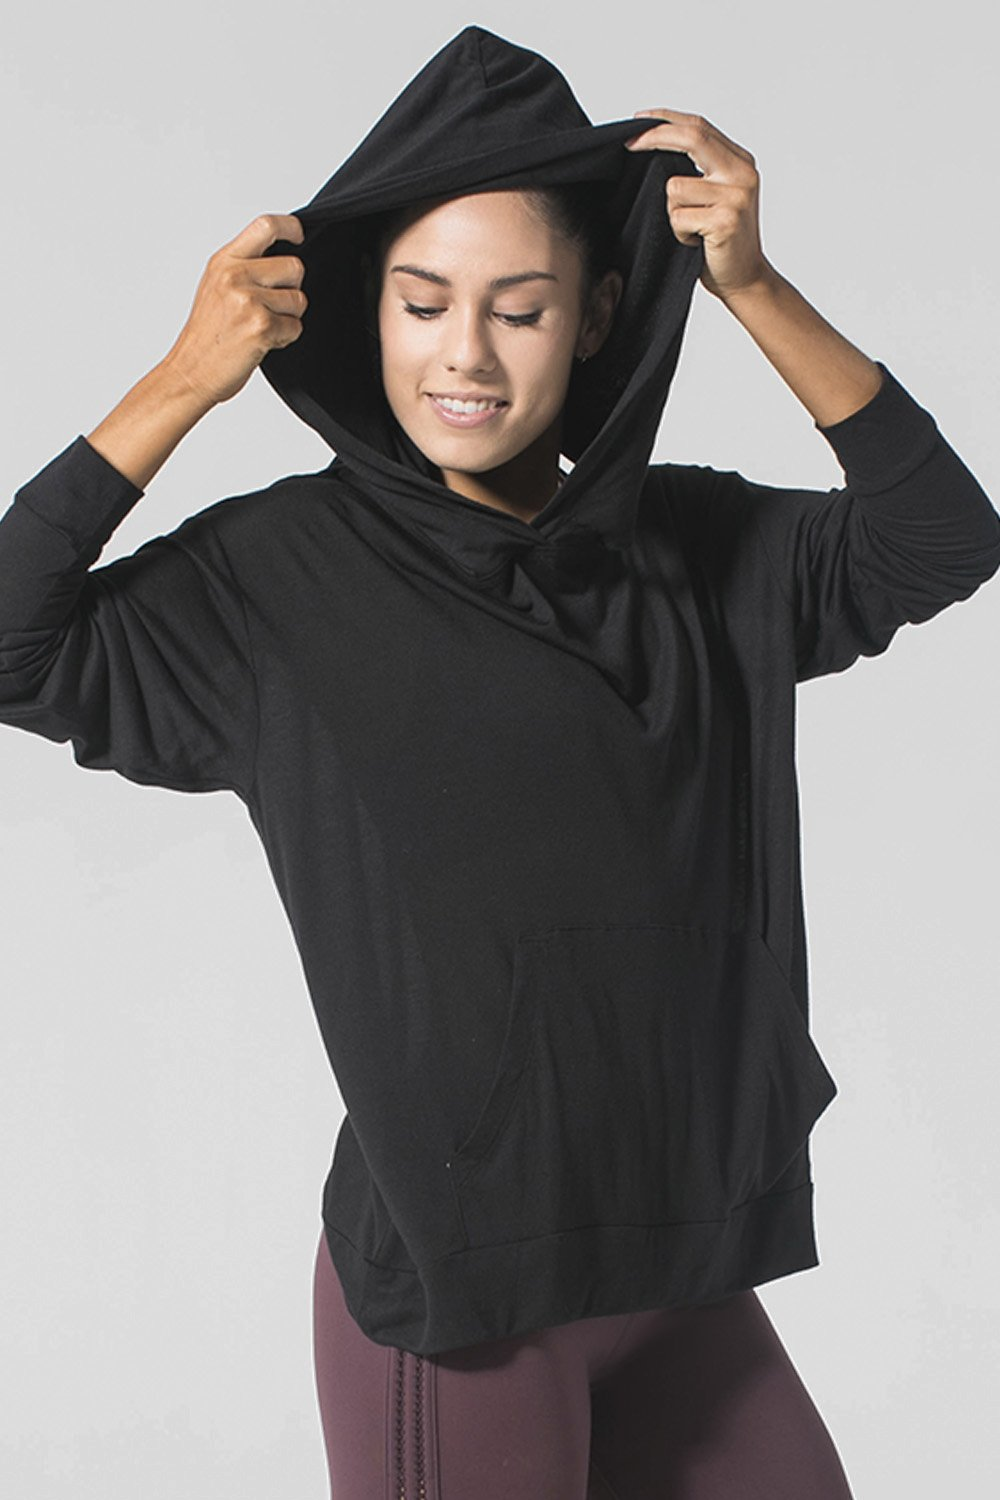 925Fit From The Hoodie in Black, you can Look Great with 925Fit at Butterflies and Bikinis